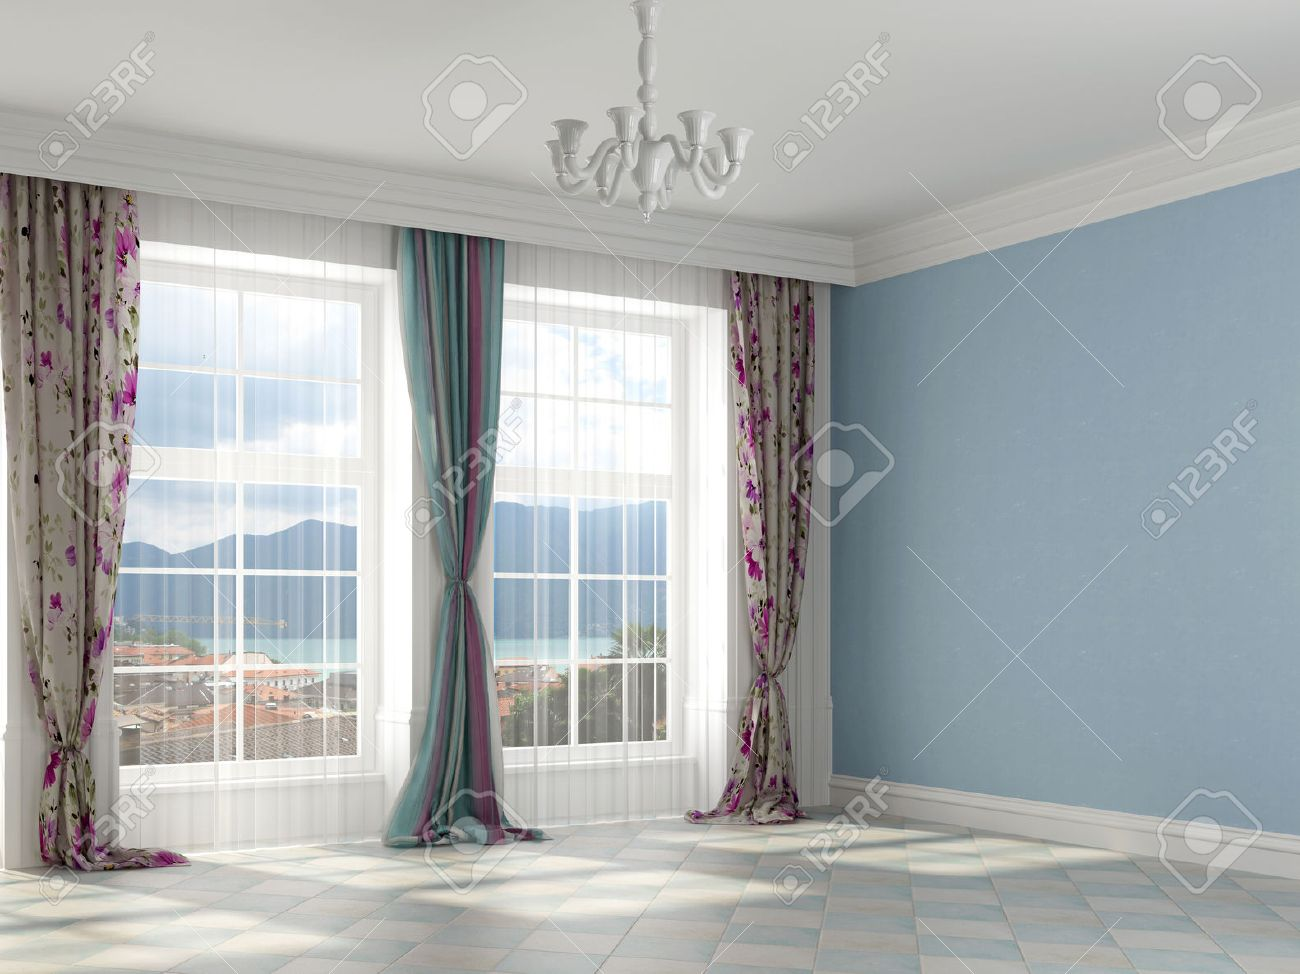 Colorful Interior With Blue Colored Walls And Colorful Curtains ...